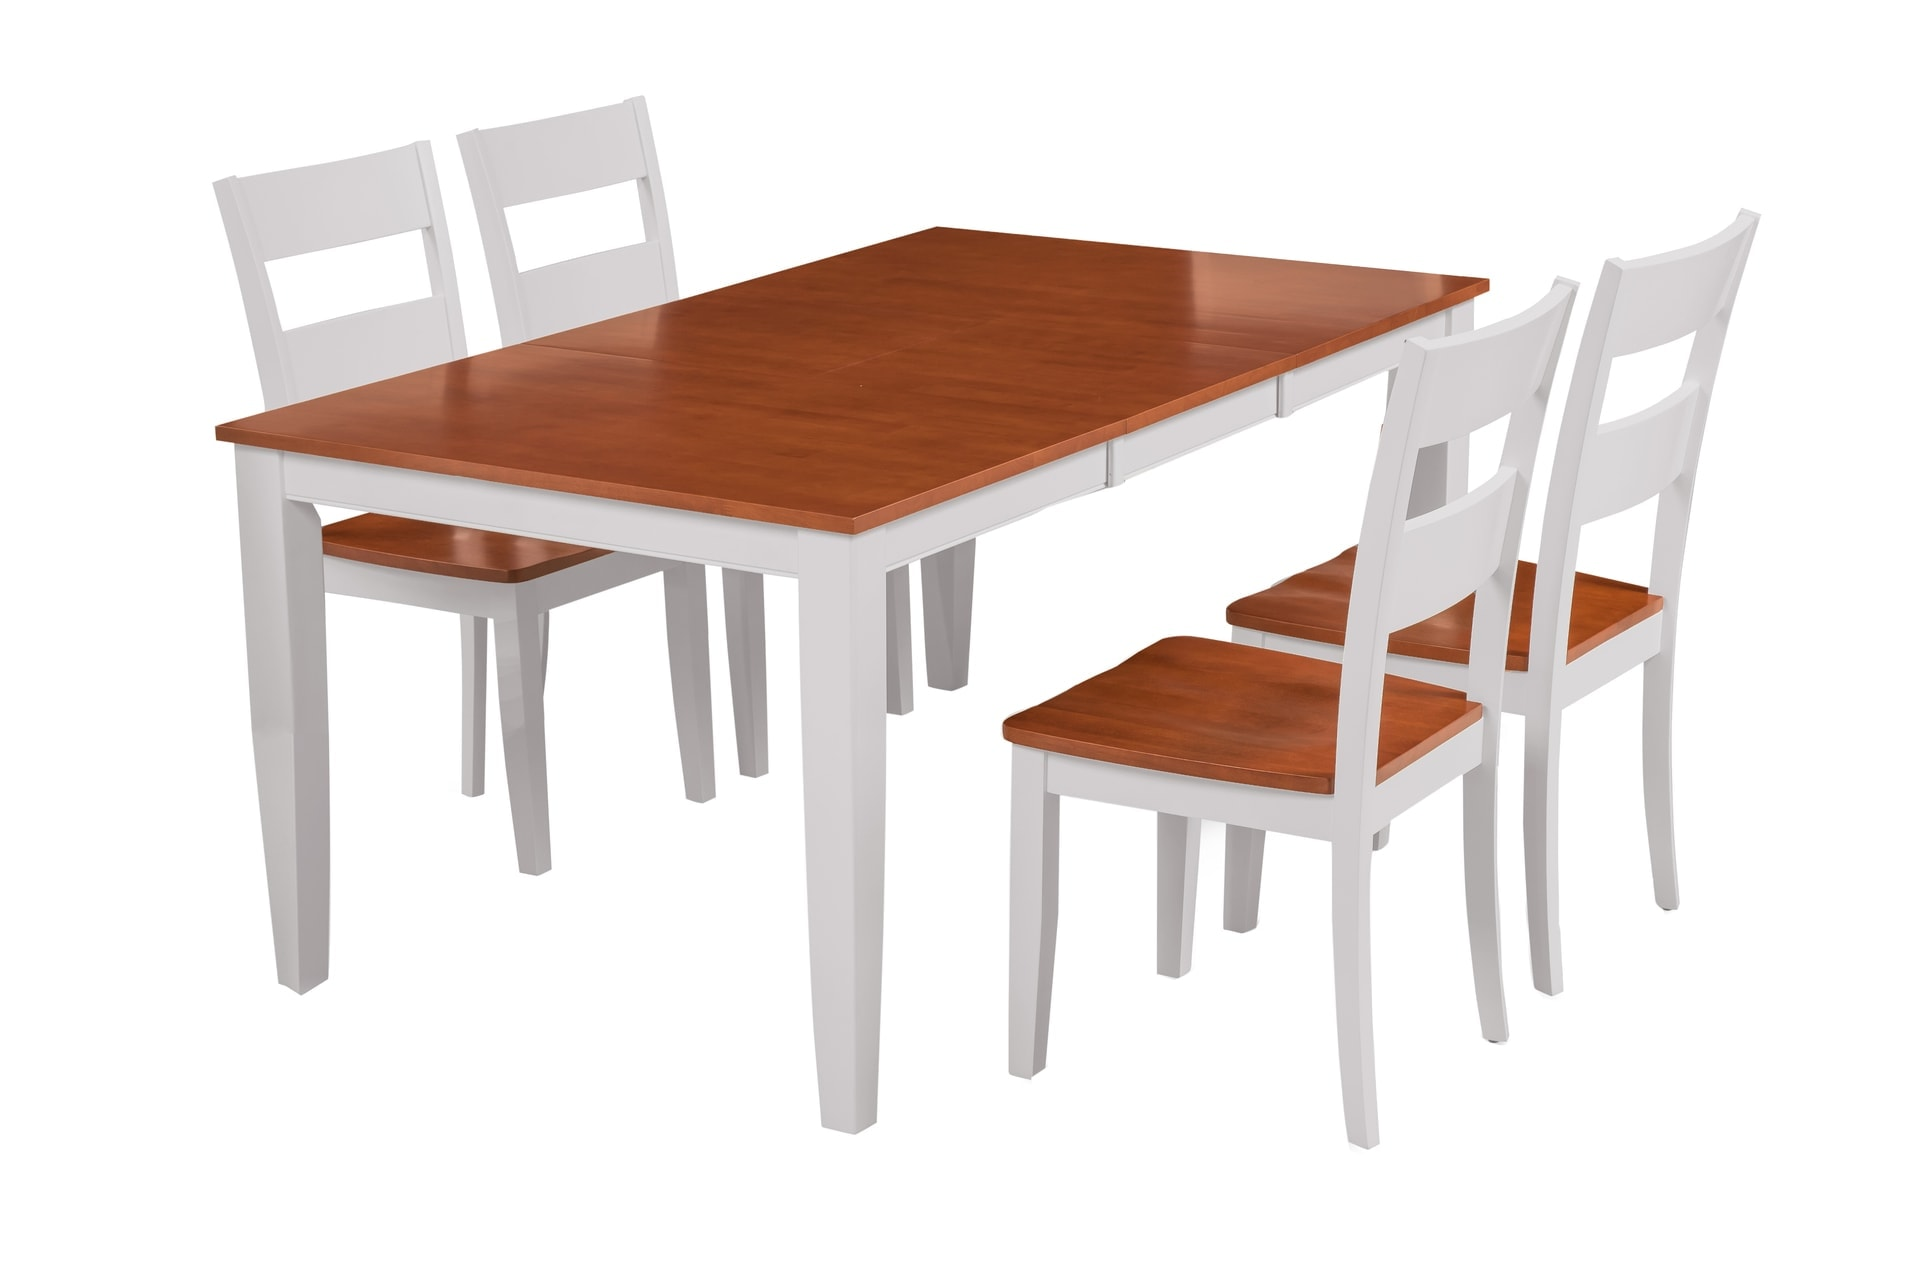 Fullerton White And Cherry Top Solid Wood Extendable Table 5 Piece Dining Set